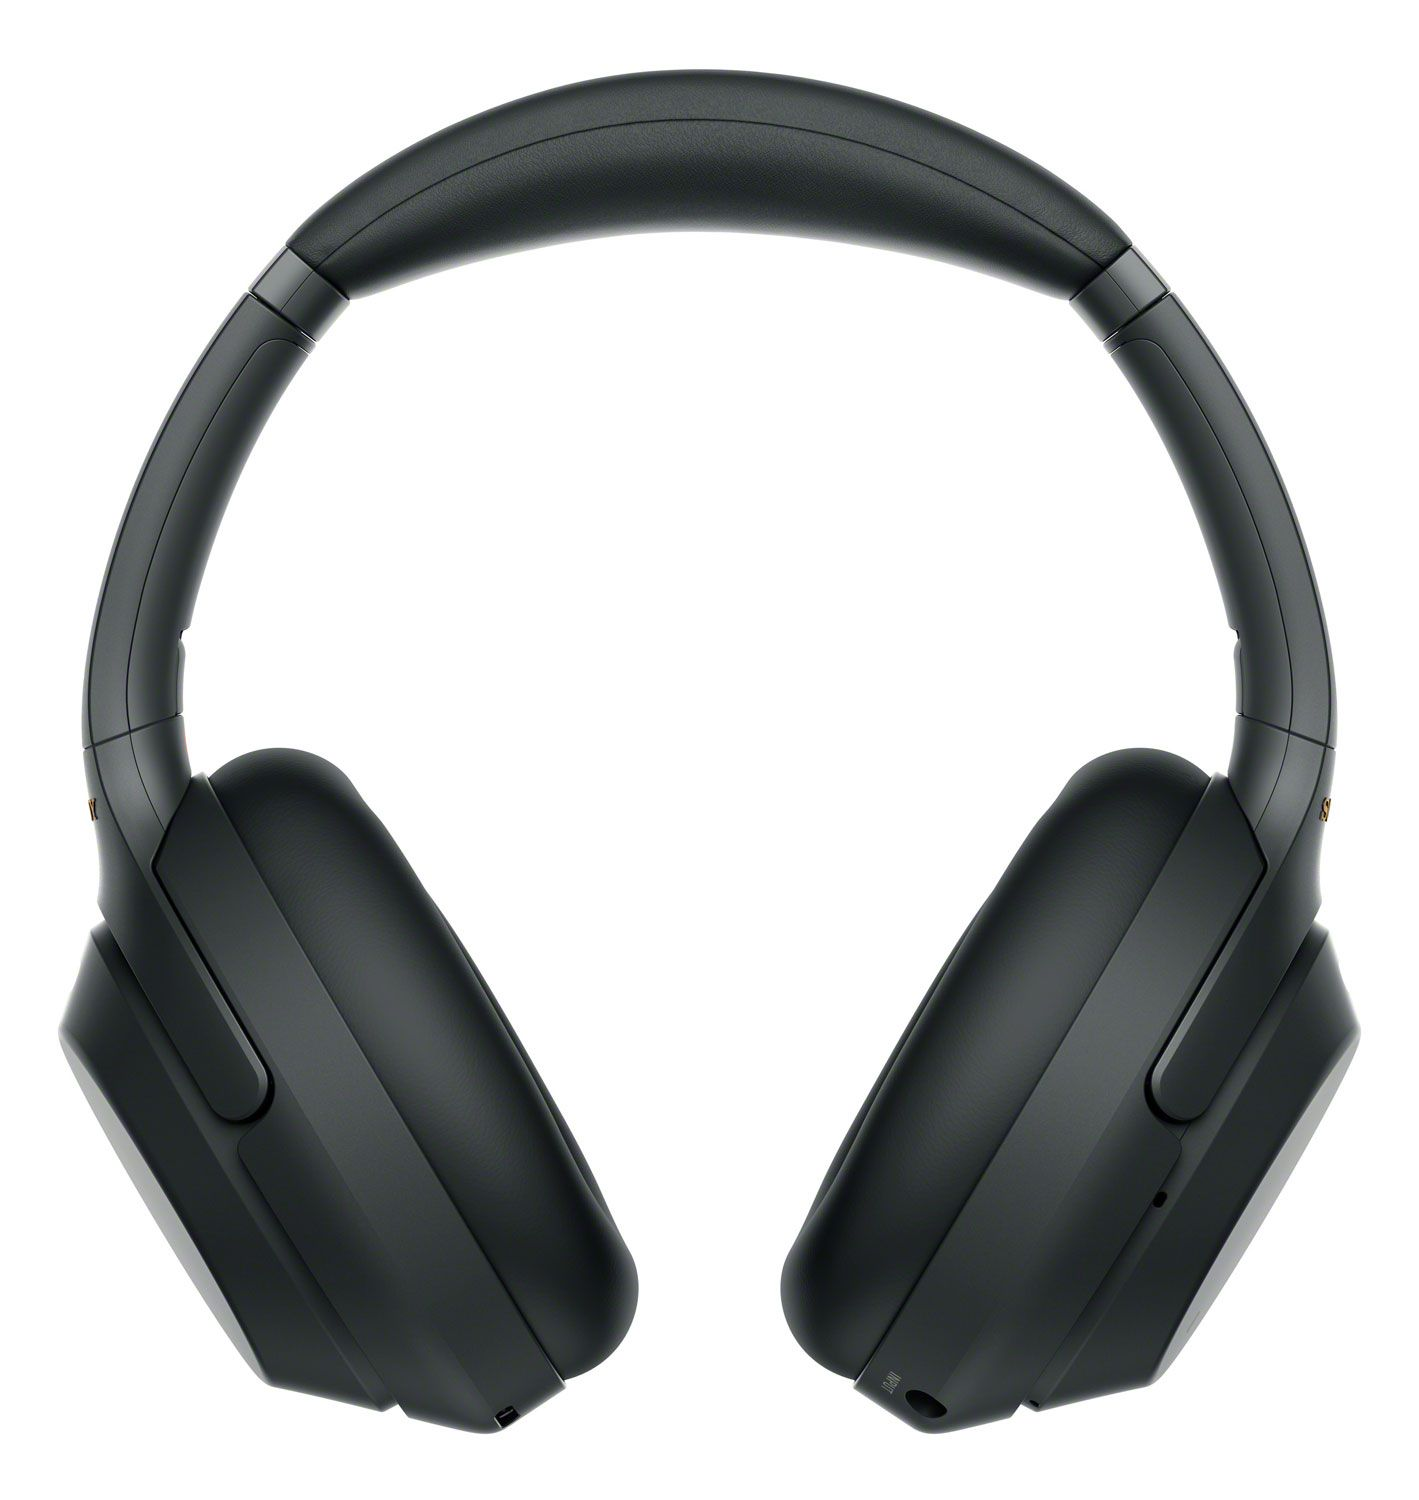 The Sony WH-1000XM3 Wireless Noise-Canceling Headphones